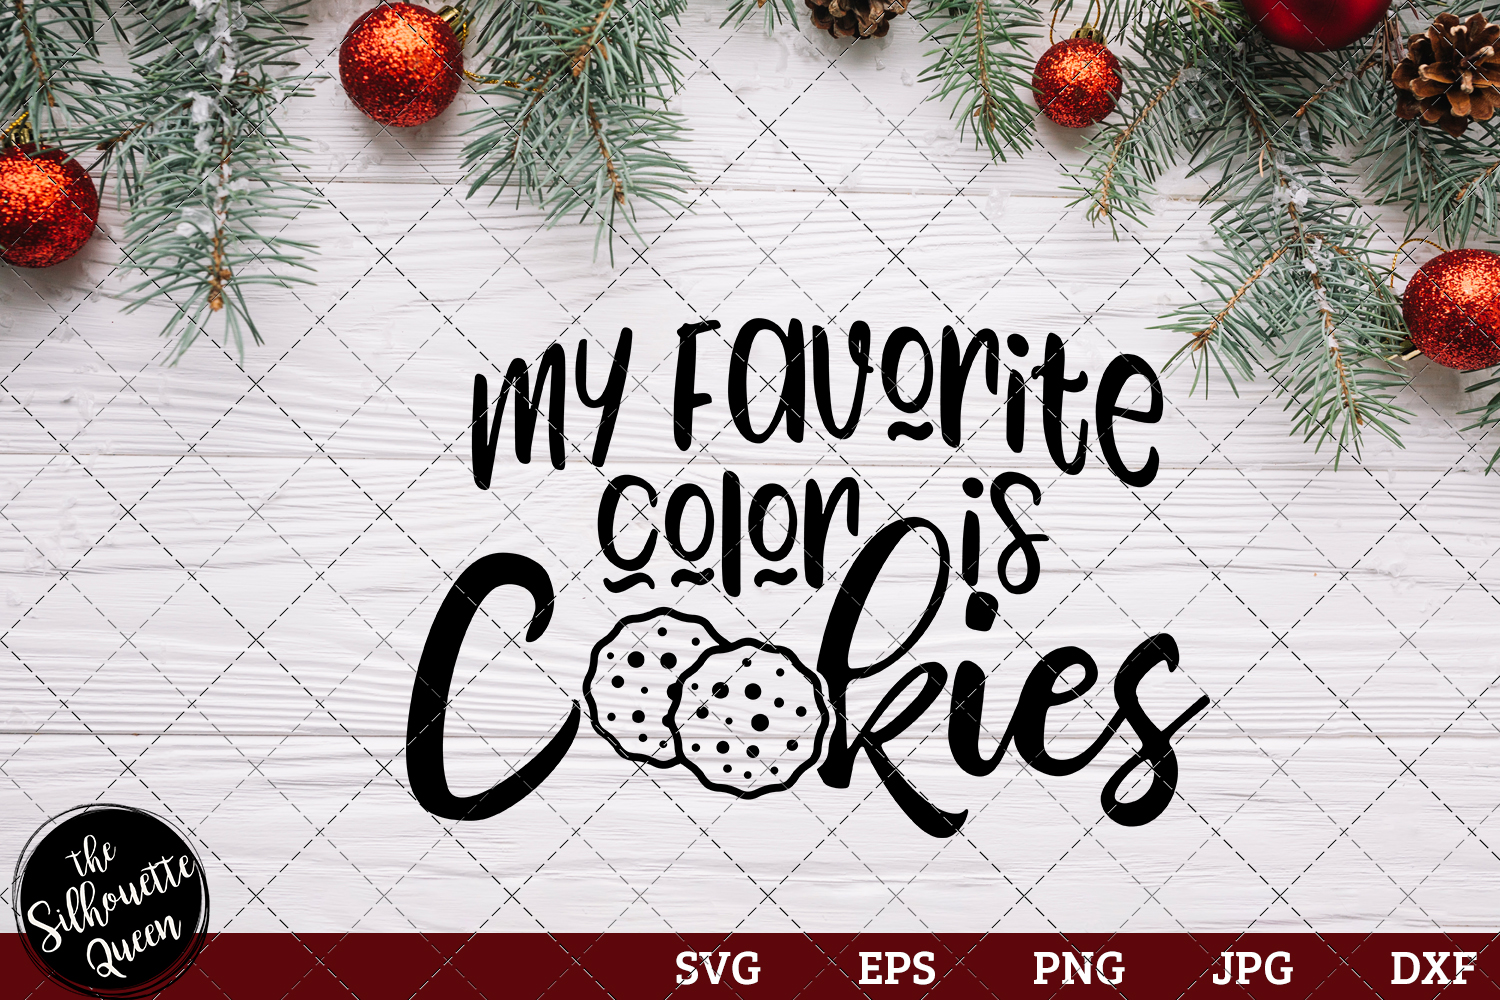 Download Free My Favorite Color Is Cookies Graphic By Thesilhouettequeenshop for Cricut Explore, Silhouette and other cutting machines.